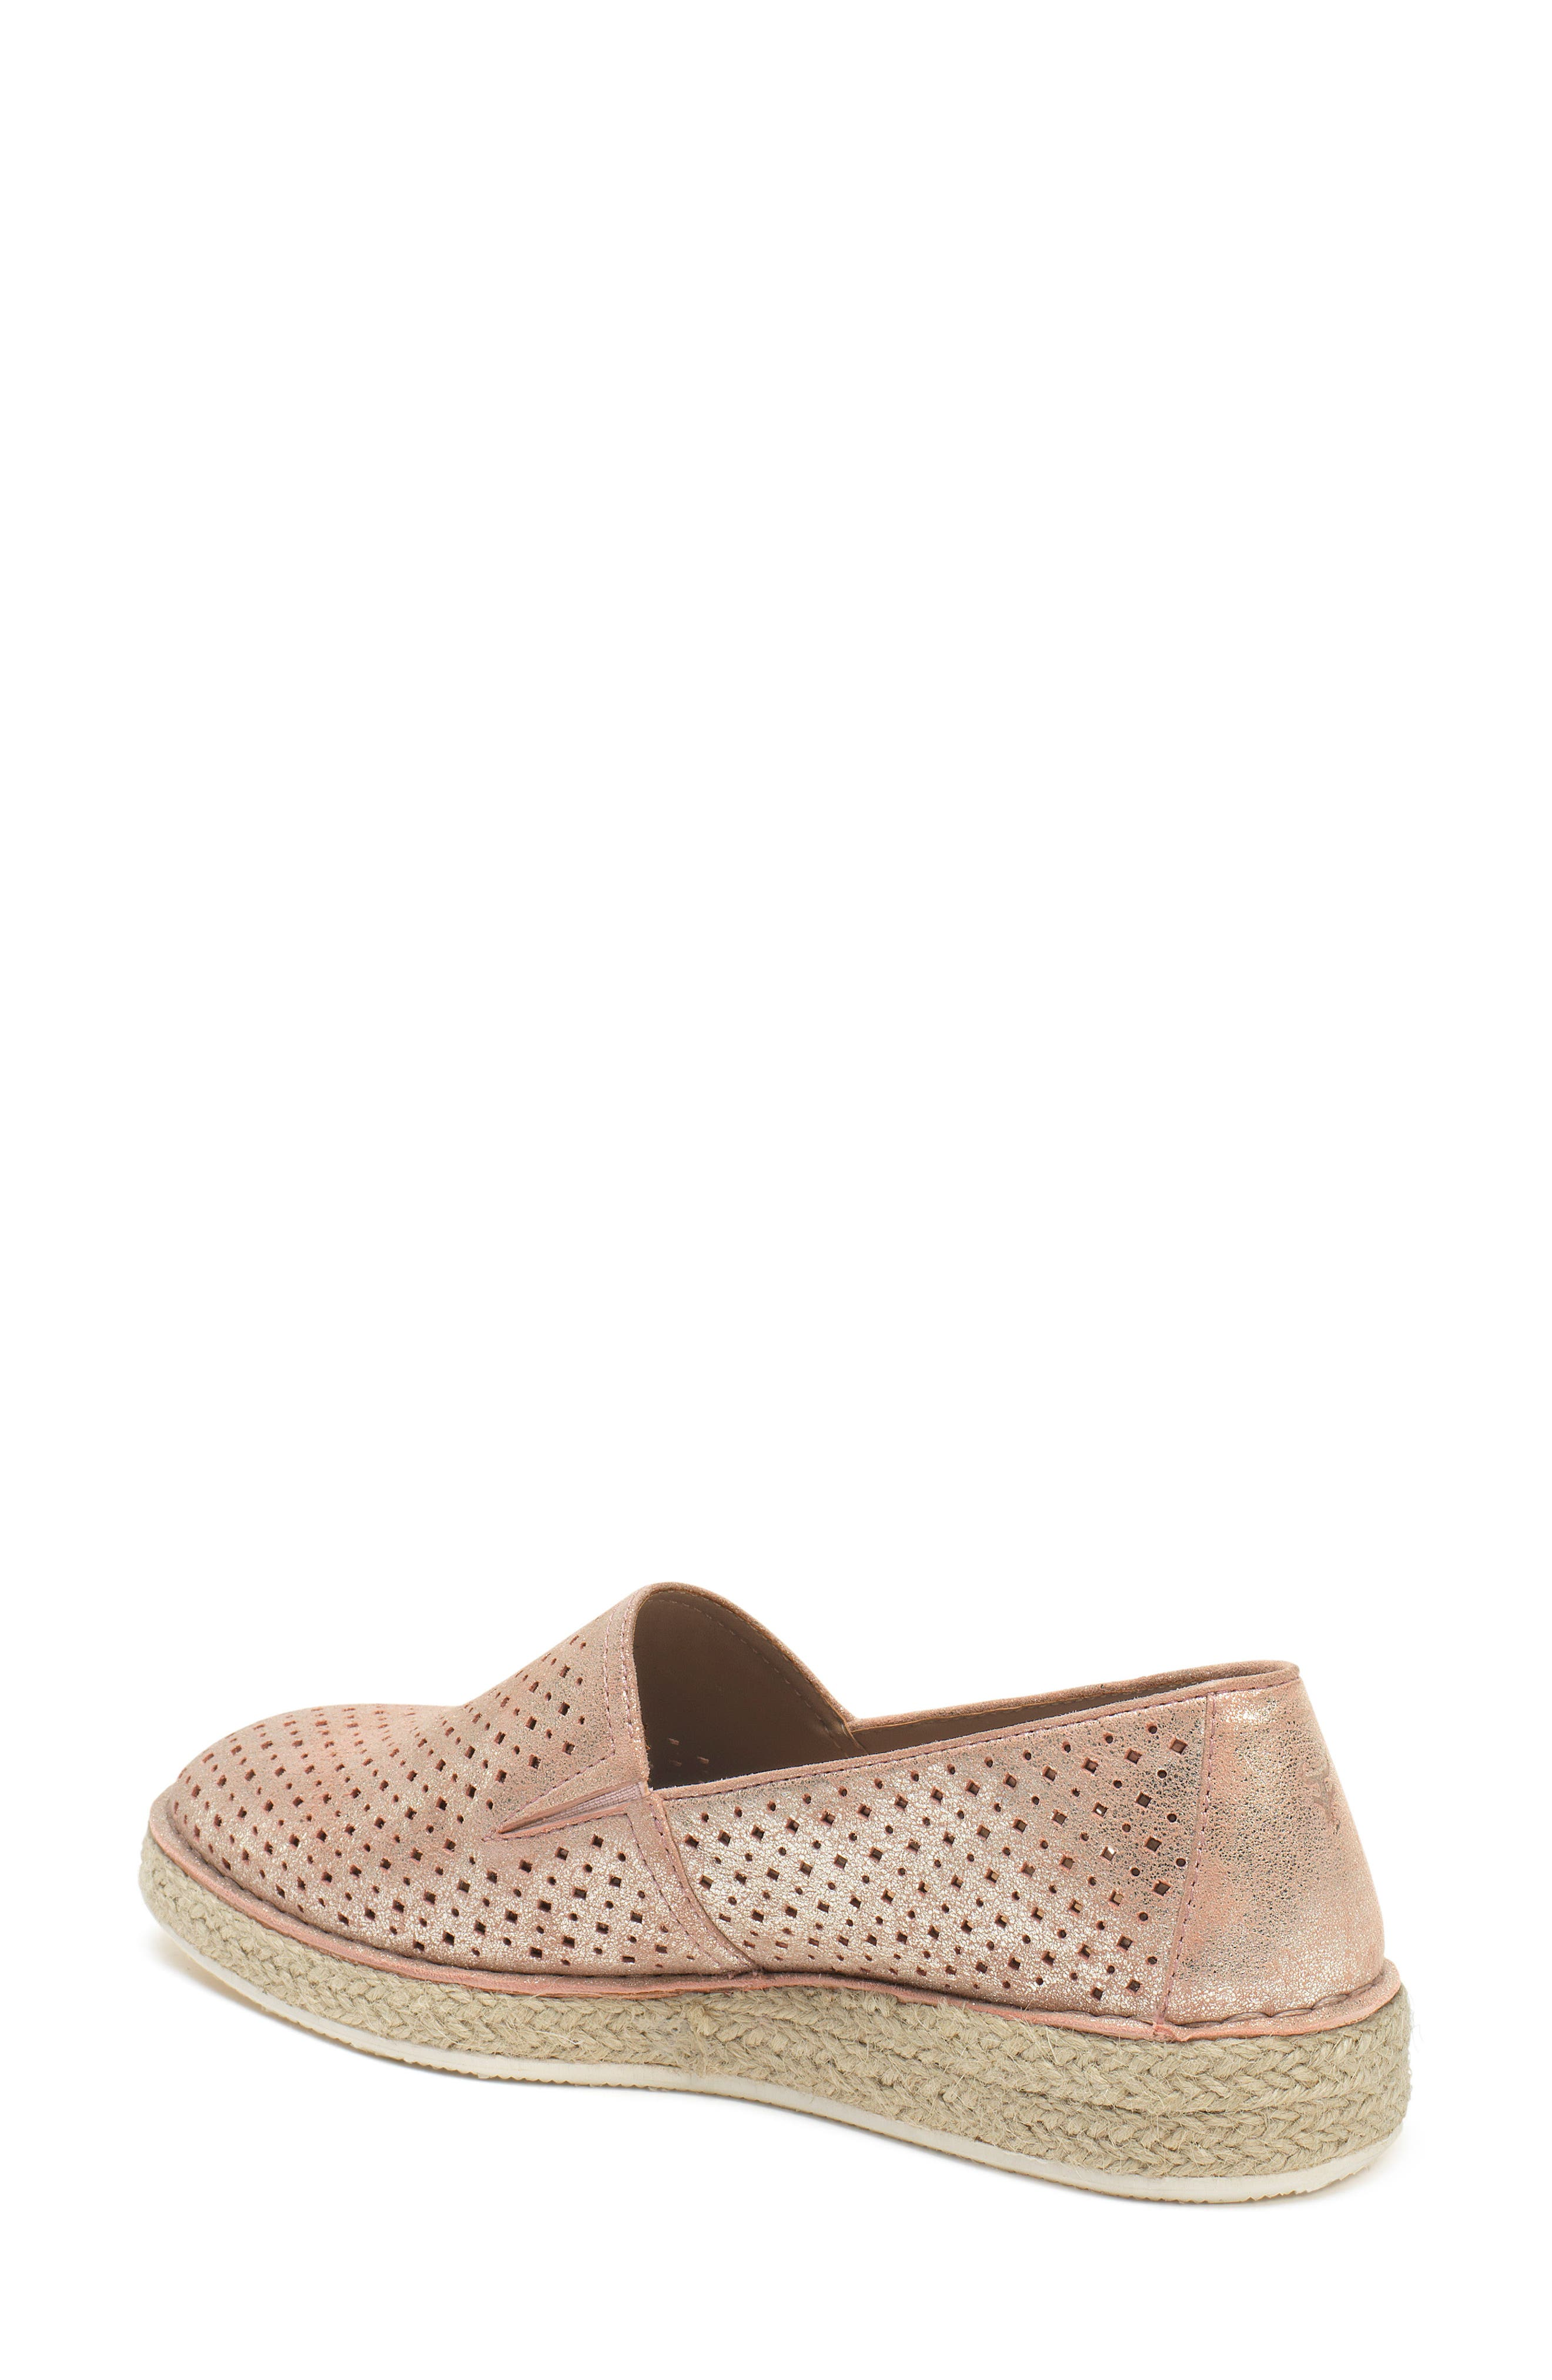 Paige Perforated Flat,                             Alternate thumbnail 2, color,                             Blush Metallic Suede